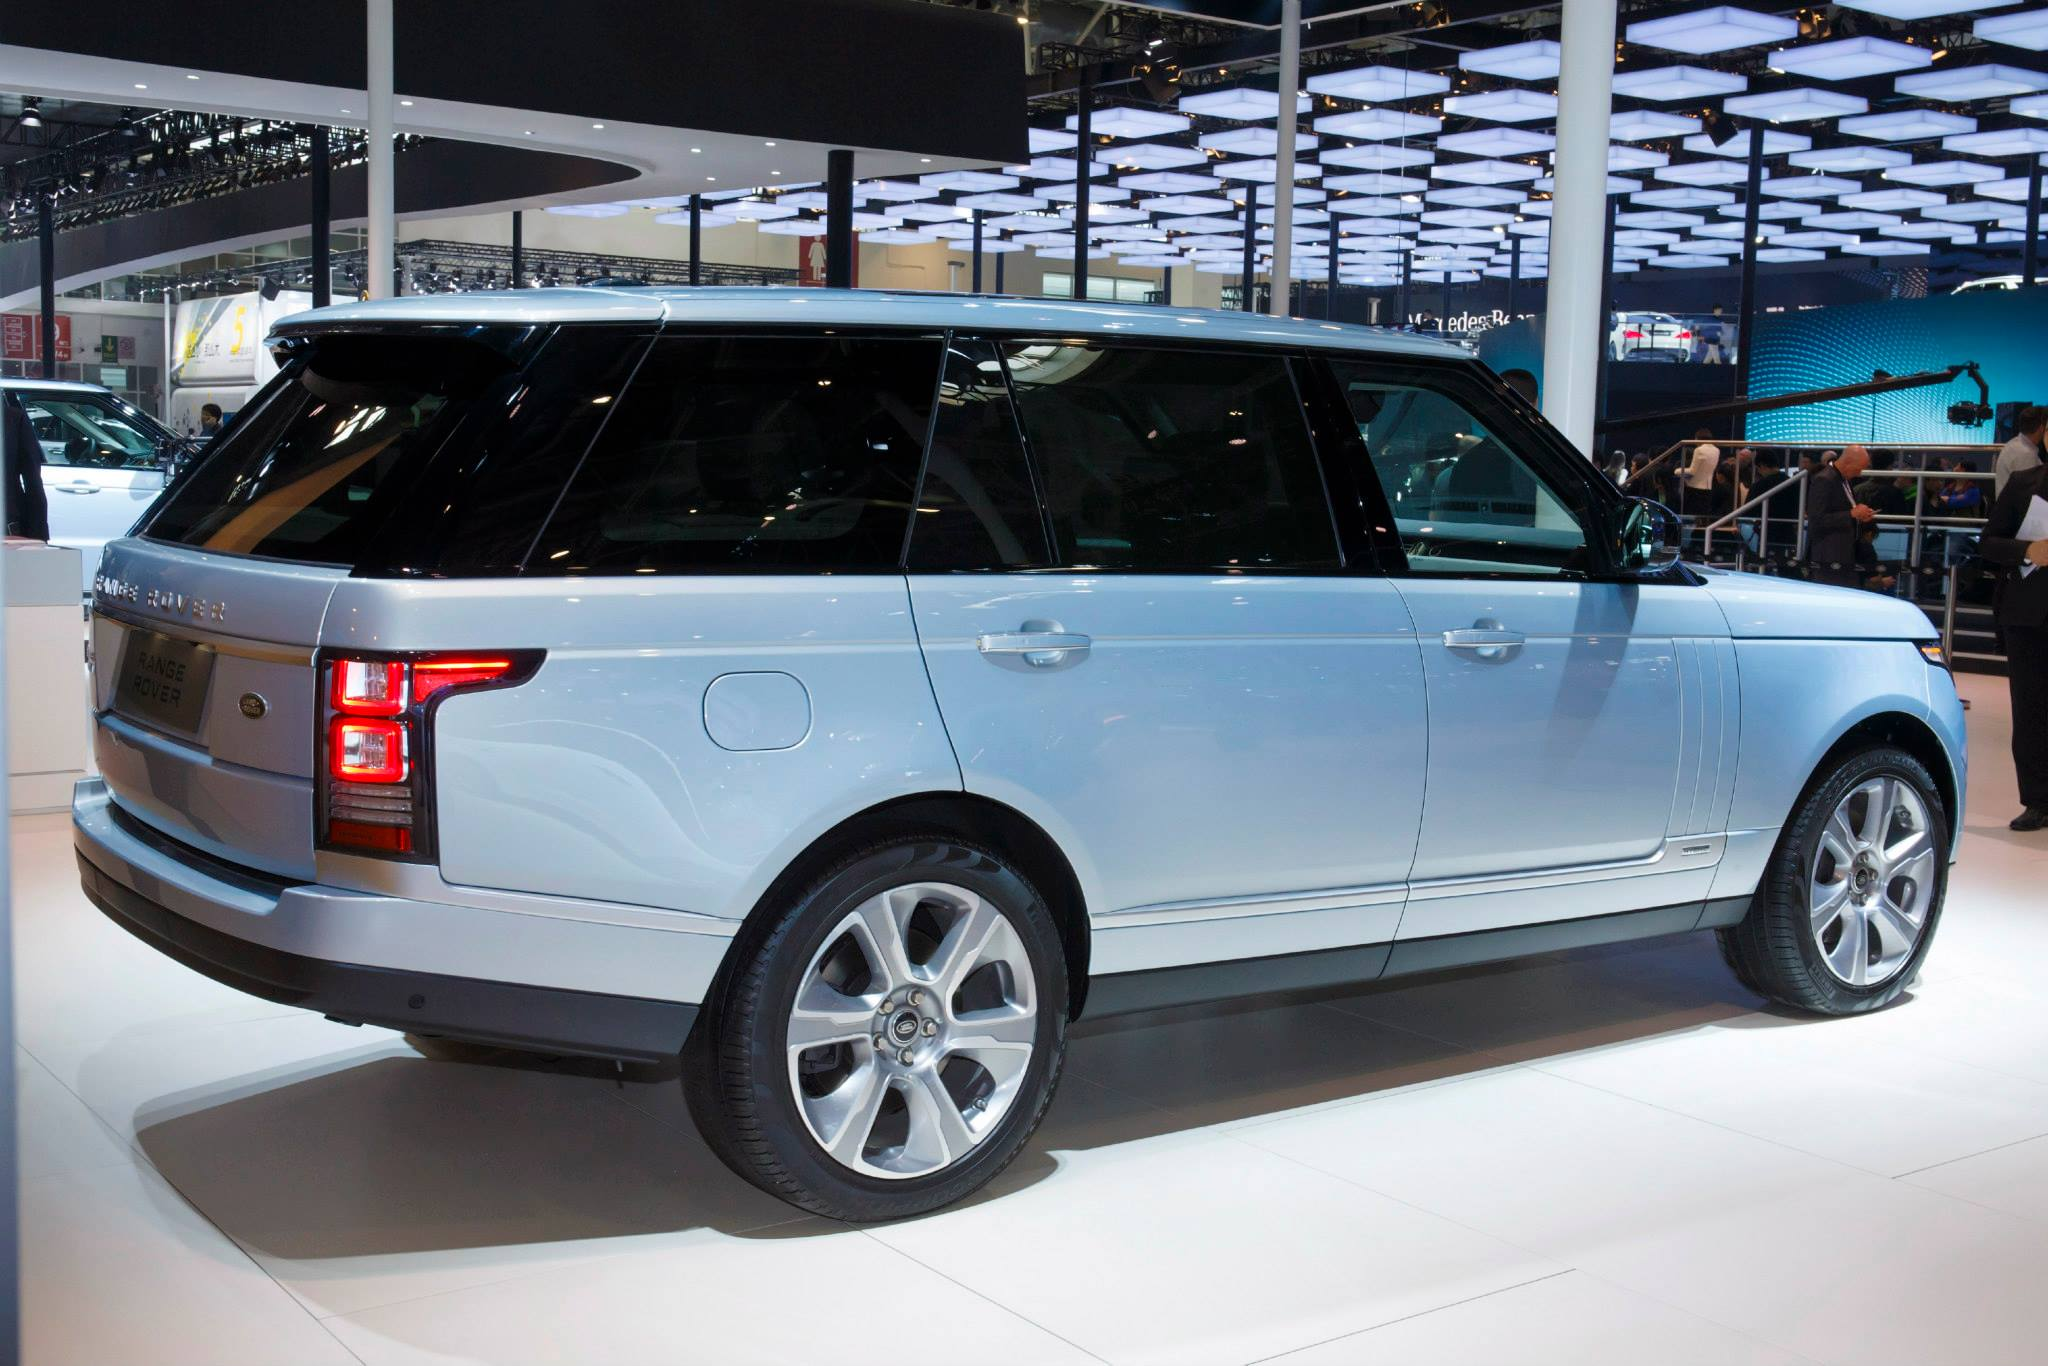 range rover hybrid long wheelbase revealed in china autoevolution. Black Bedroom Furniture Sets. Home Design Ideas